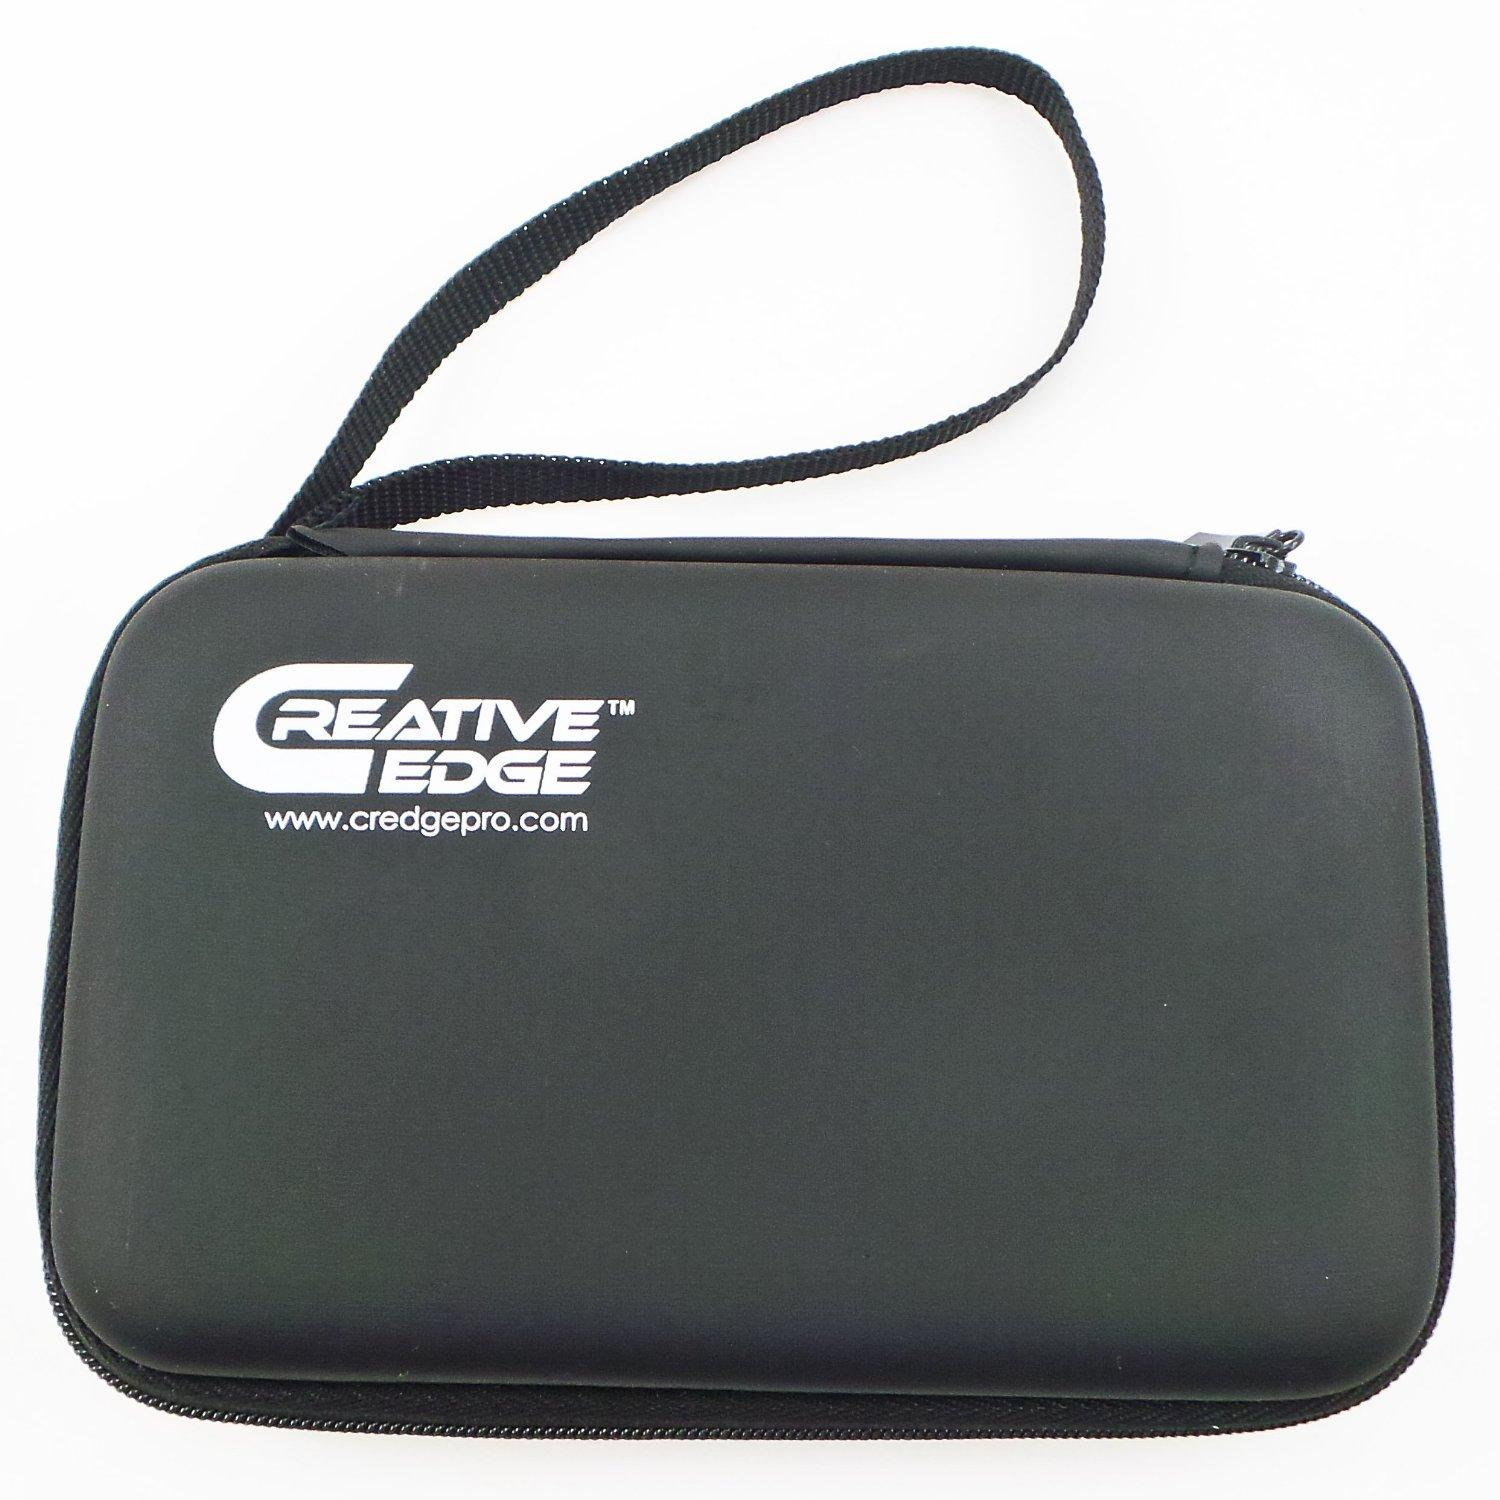 Creative Edge CarryCase,  Zipper and Wrist Strap (Black)